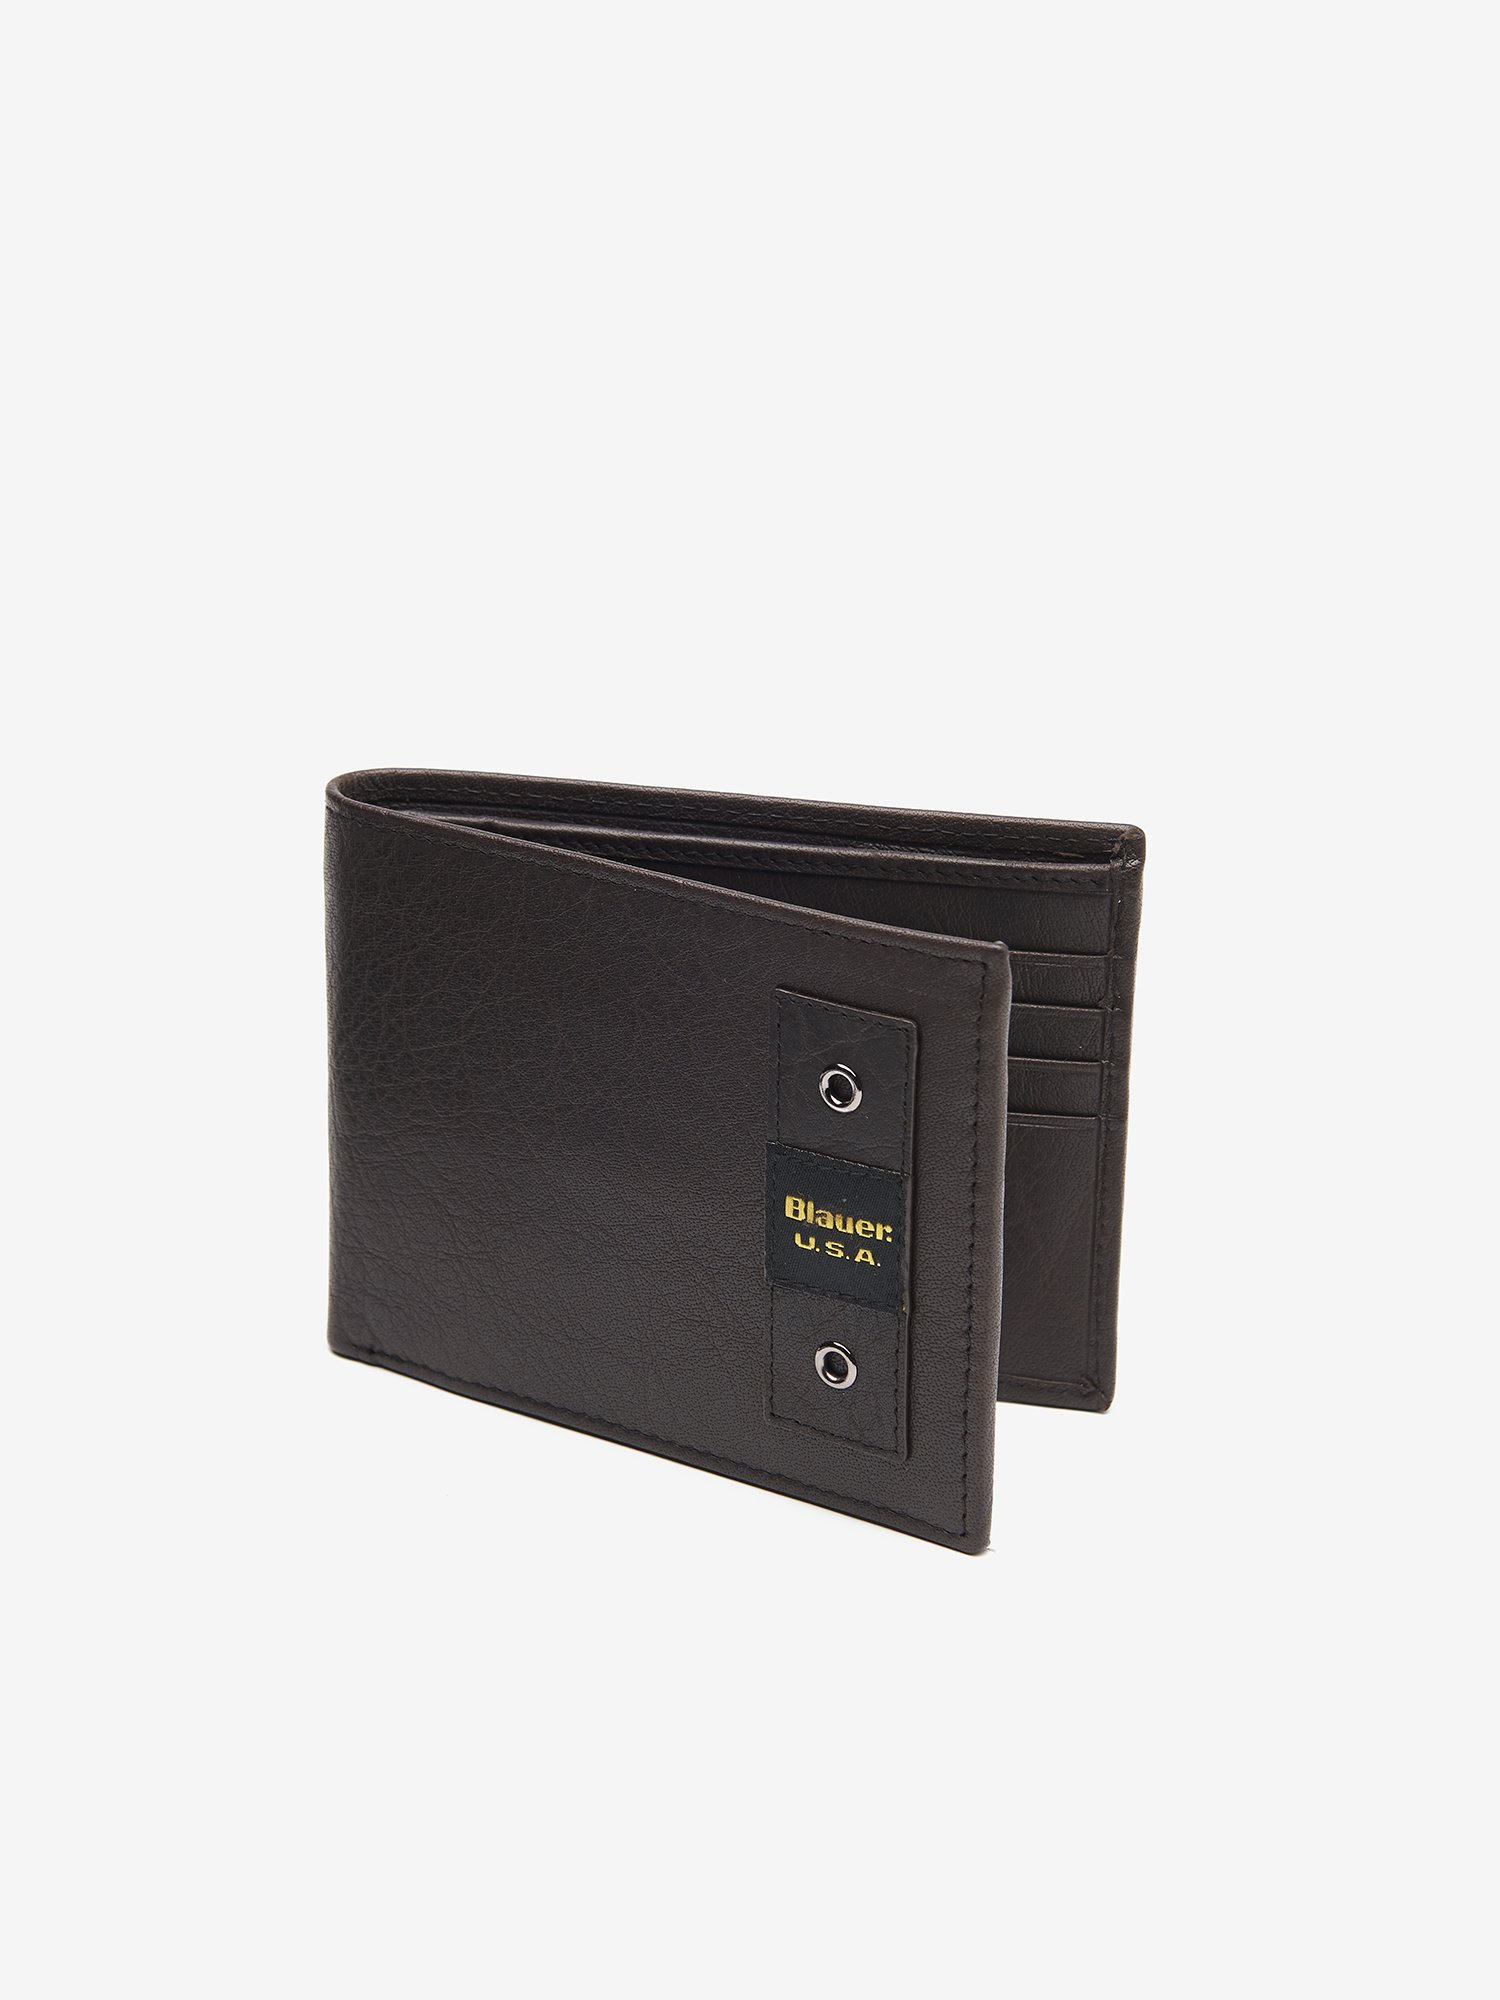 ARMOR CREDIT CARD HOLDER - Blauer